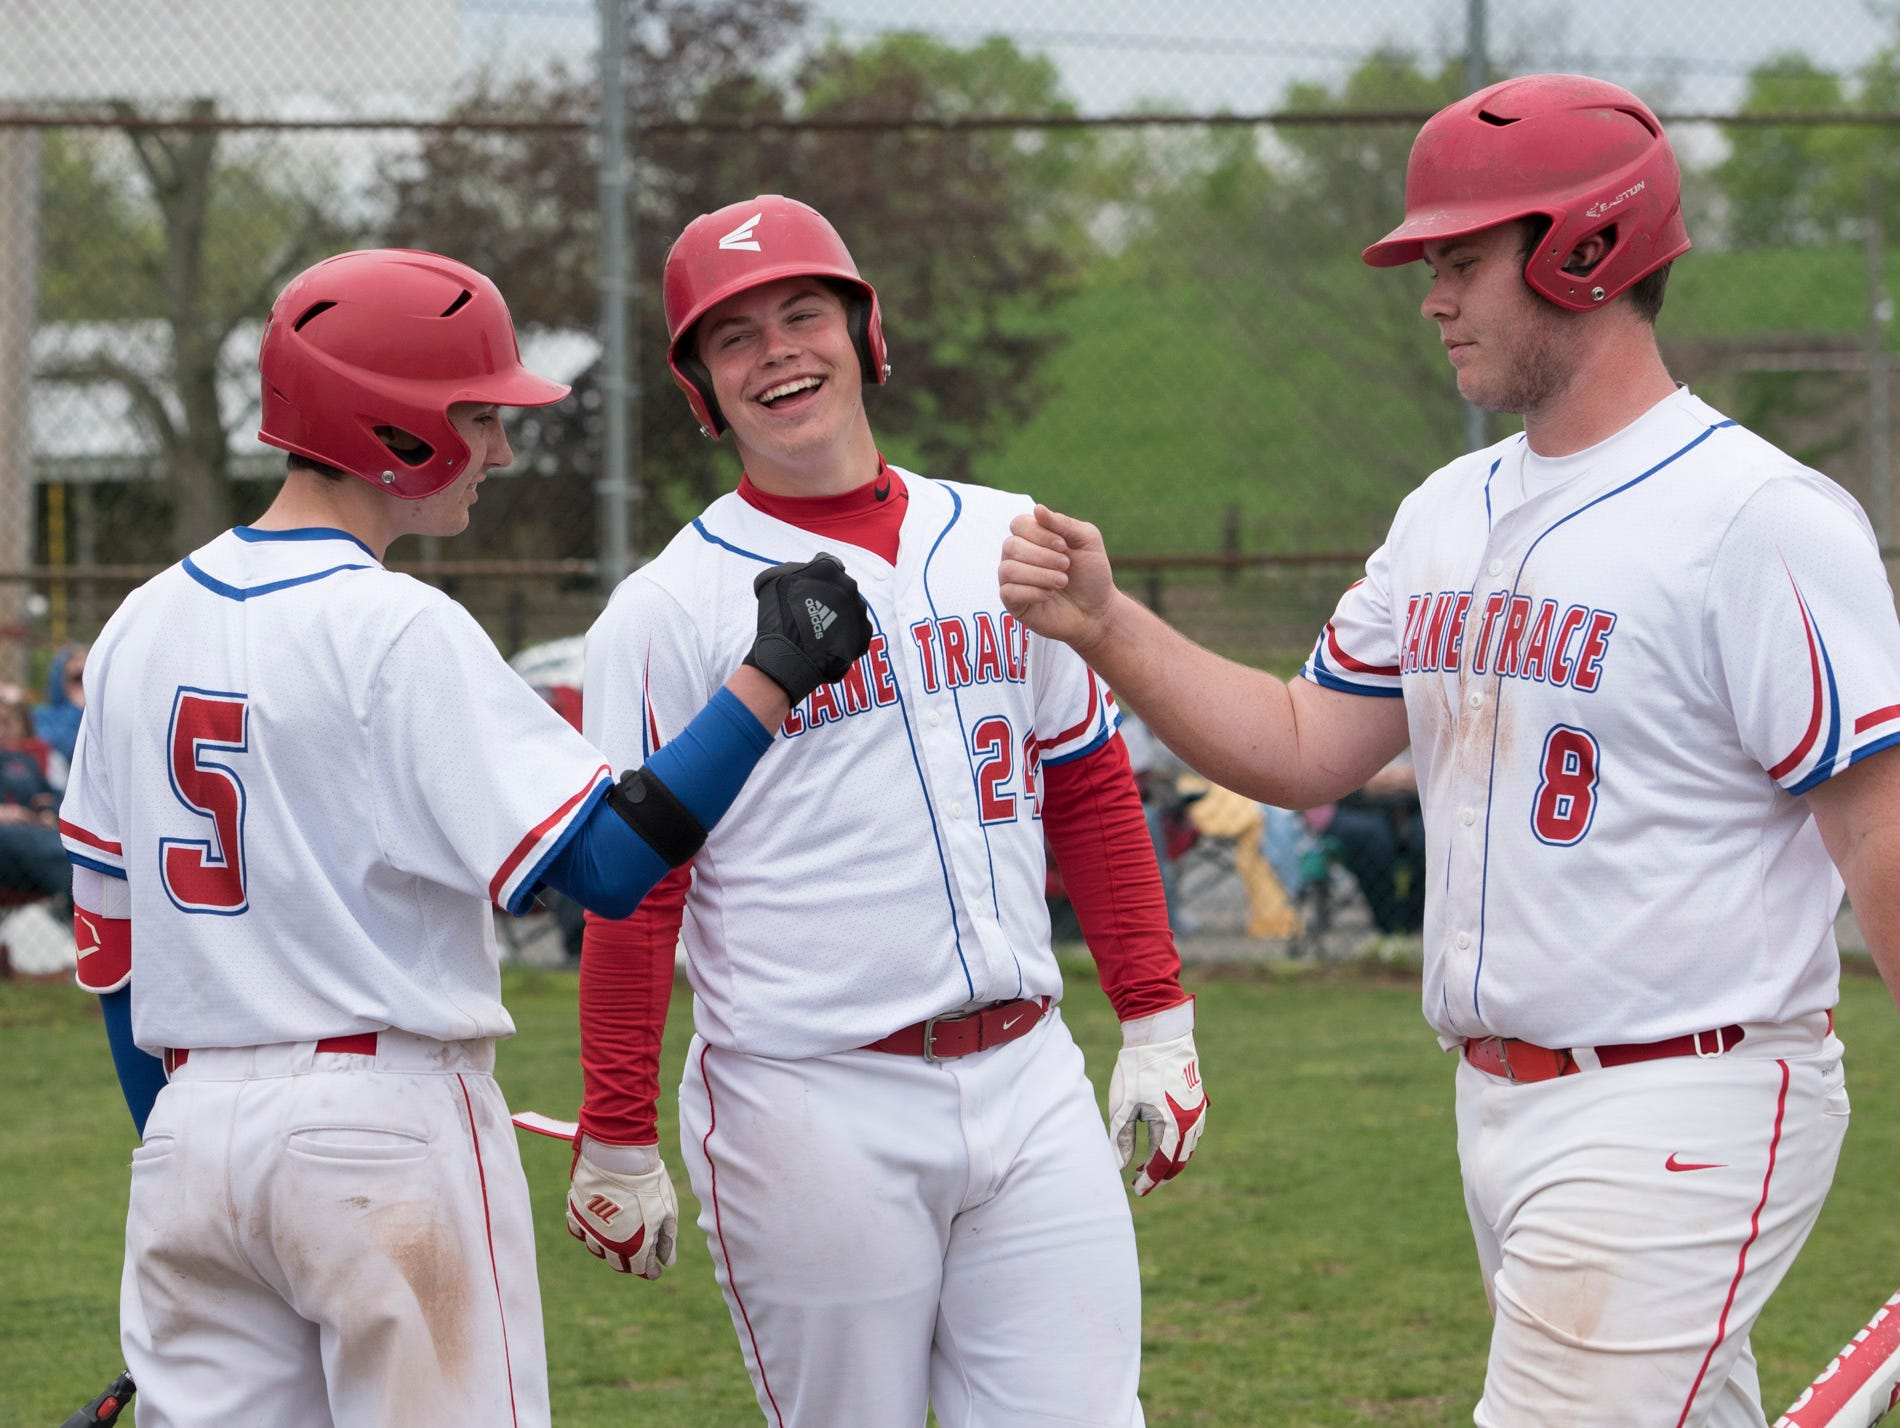 Chad Ison celebrates with fellow teammates after scoring against Chesapeake during a double header game earlier in the season.